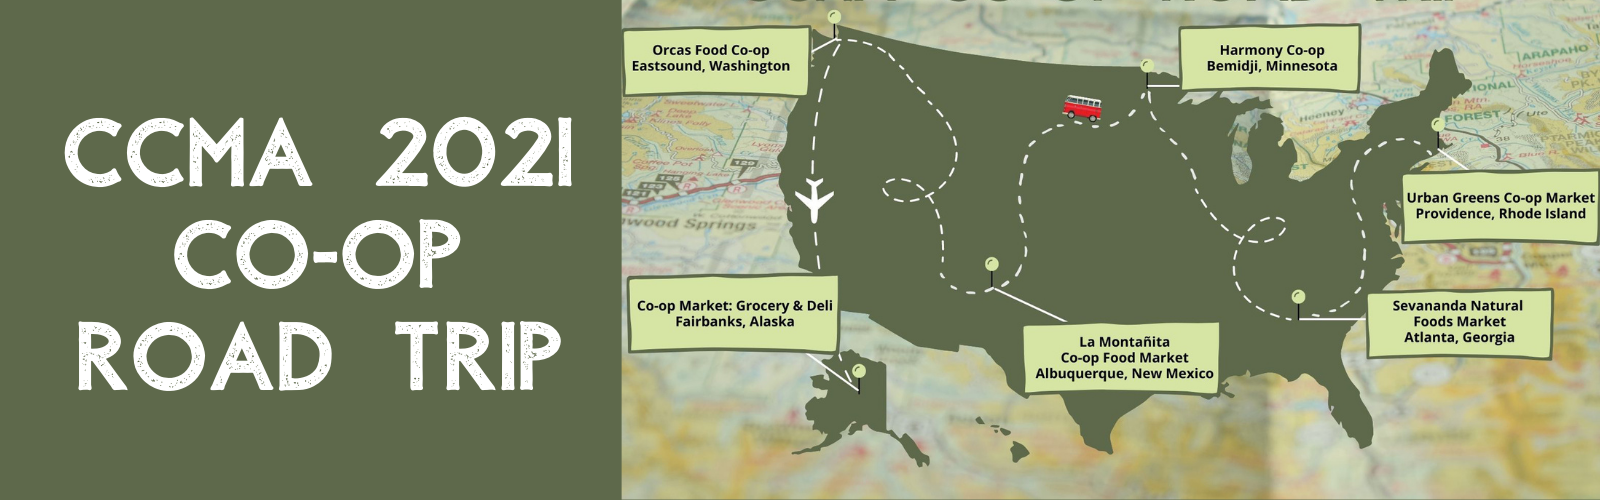 Co-op ROad Trip Banner - map of US with co-op road trip stops highlighted